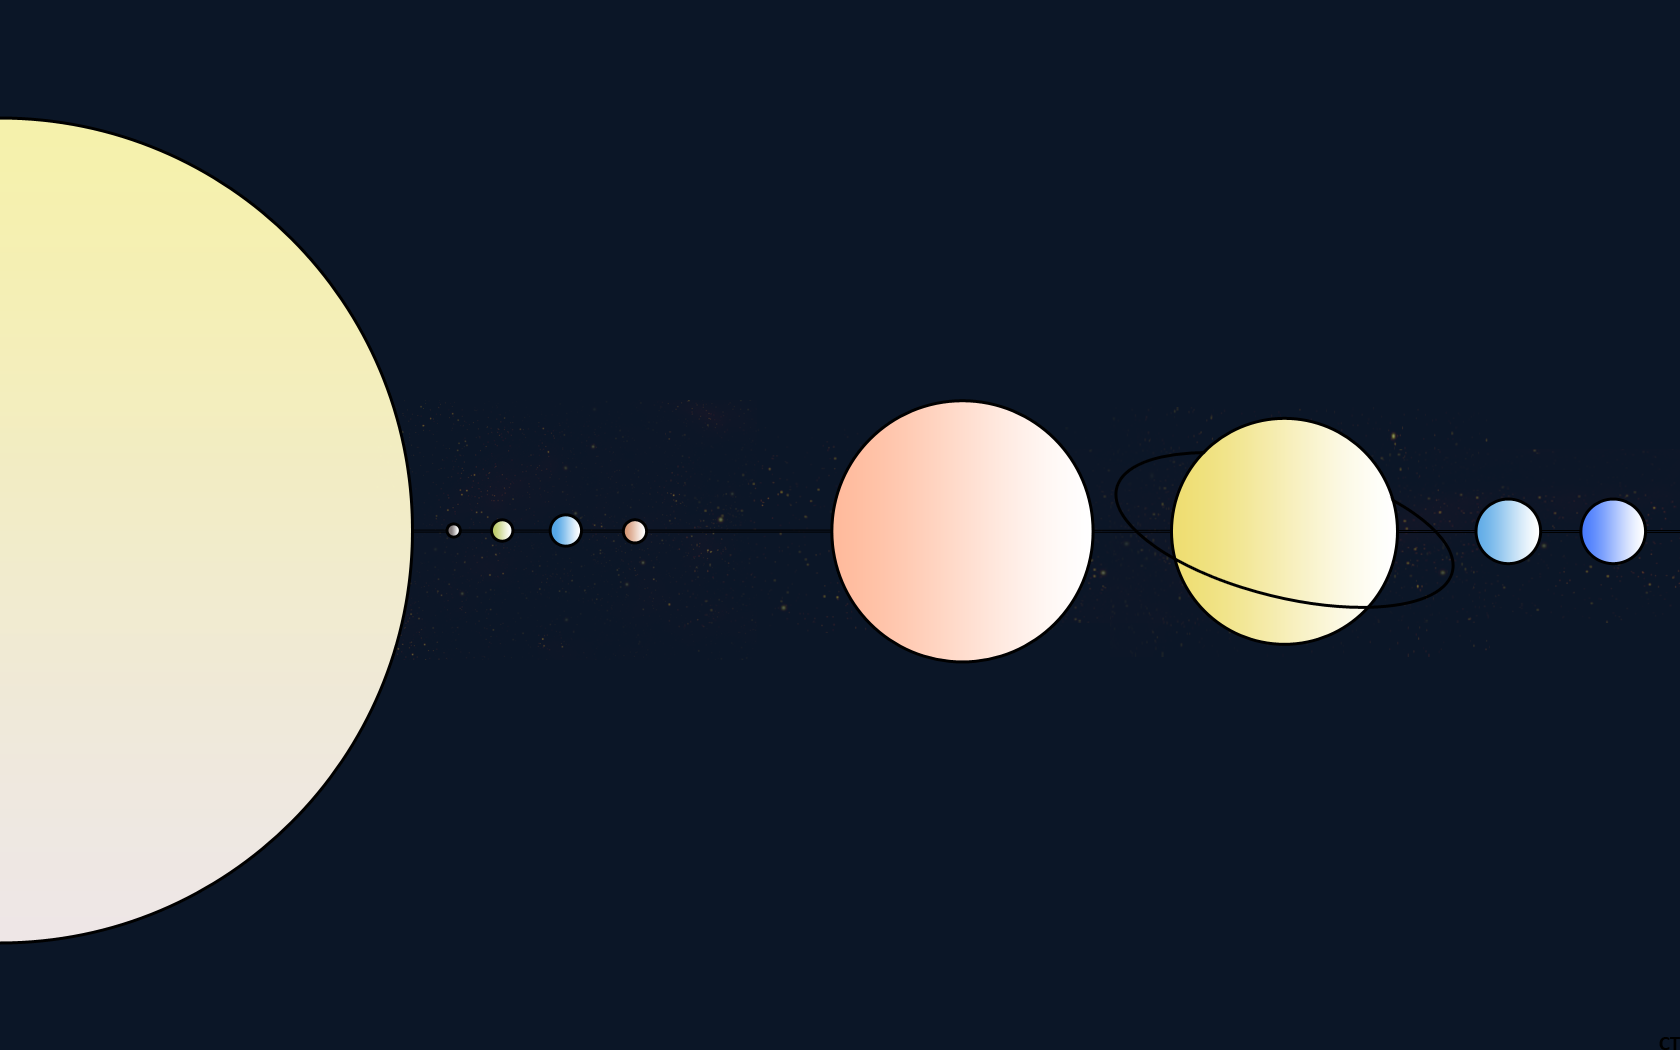 Solar system planets space wallpaper 1680x1050 117665 - Space solar system wallpaper ...